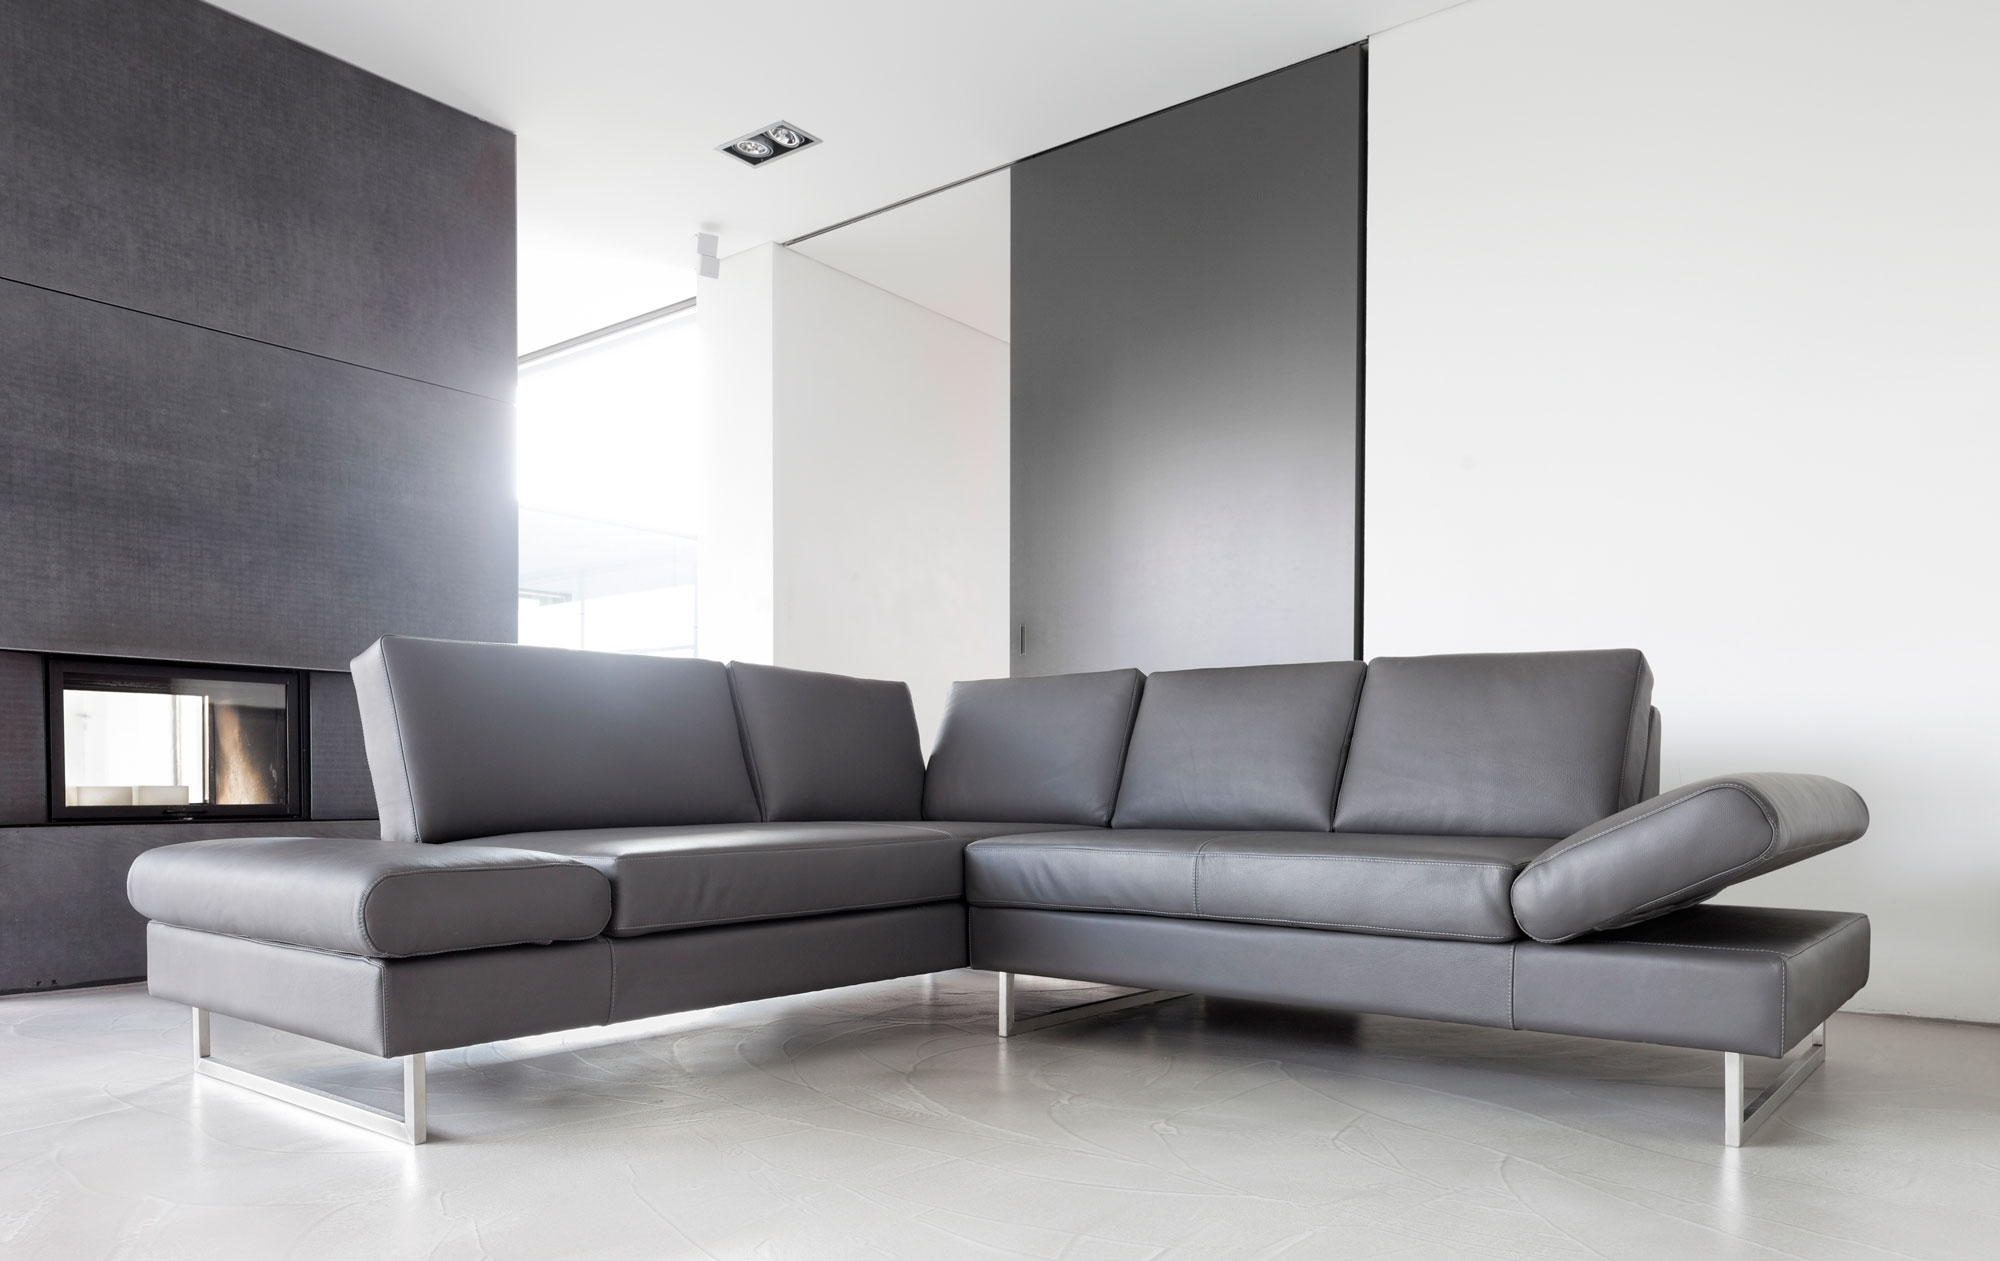 Couch Gross Sofa Gross Sofa Gro Gross Montreal Als Ecksofa Uform Grosse